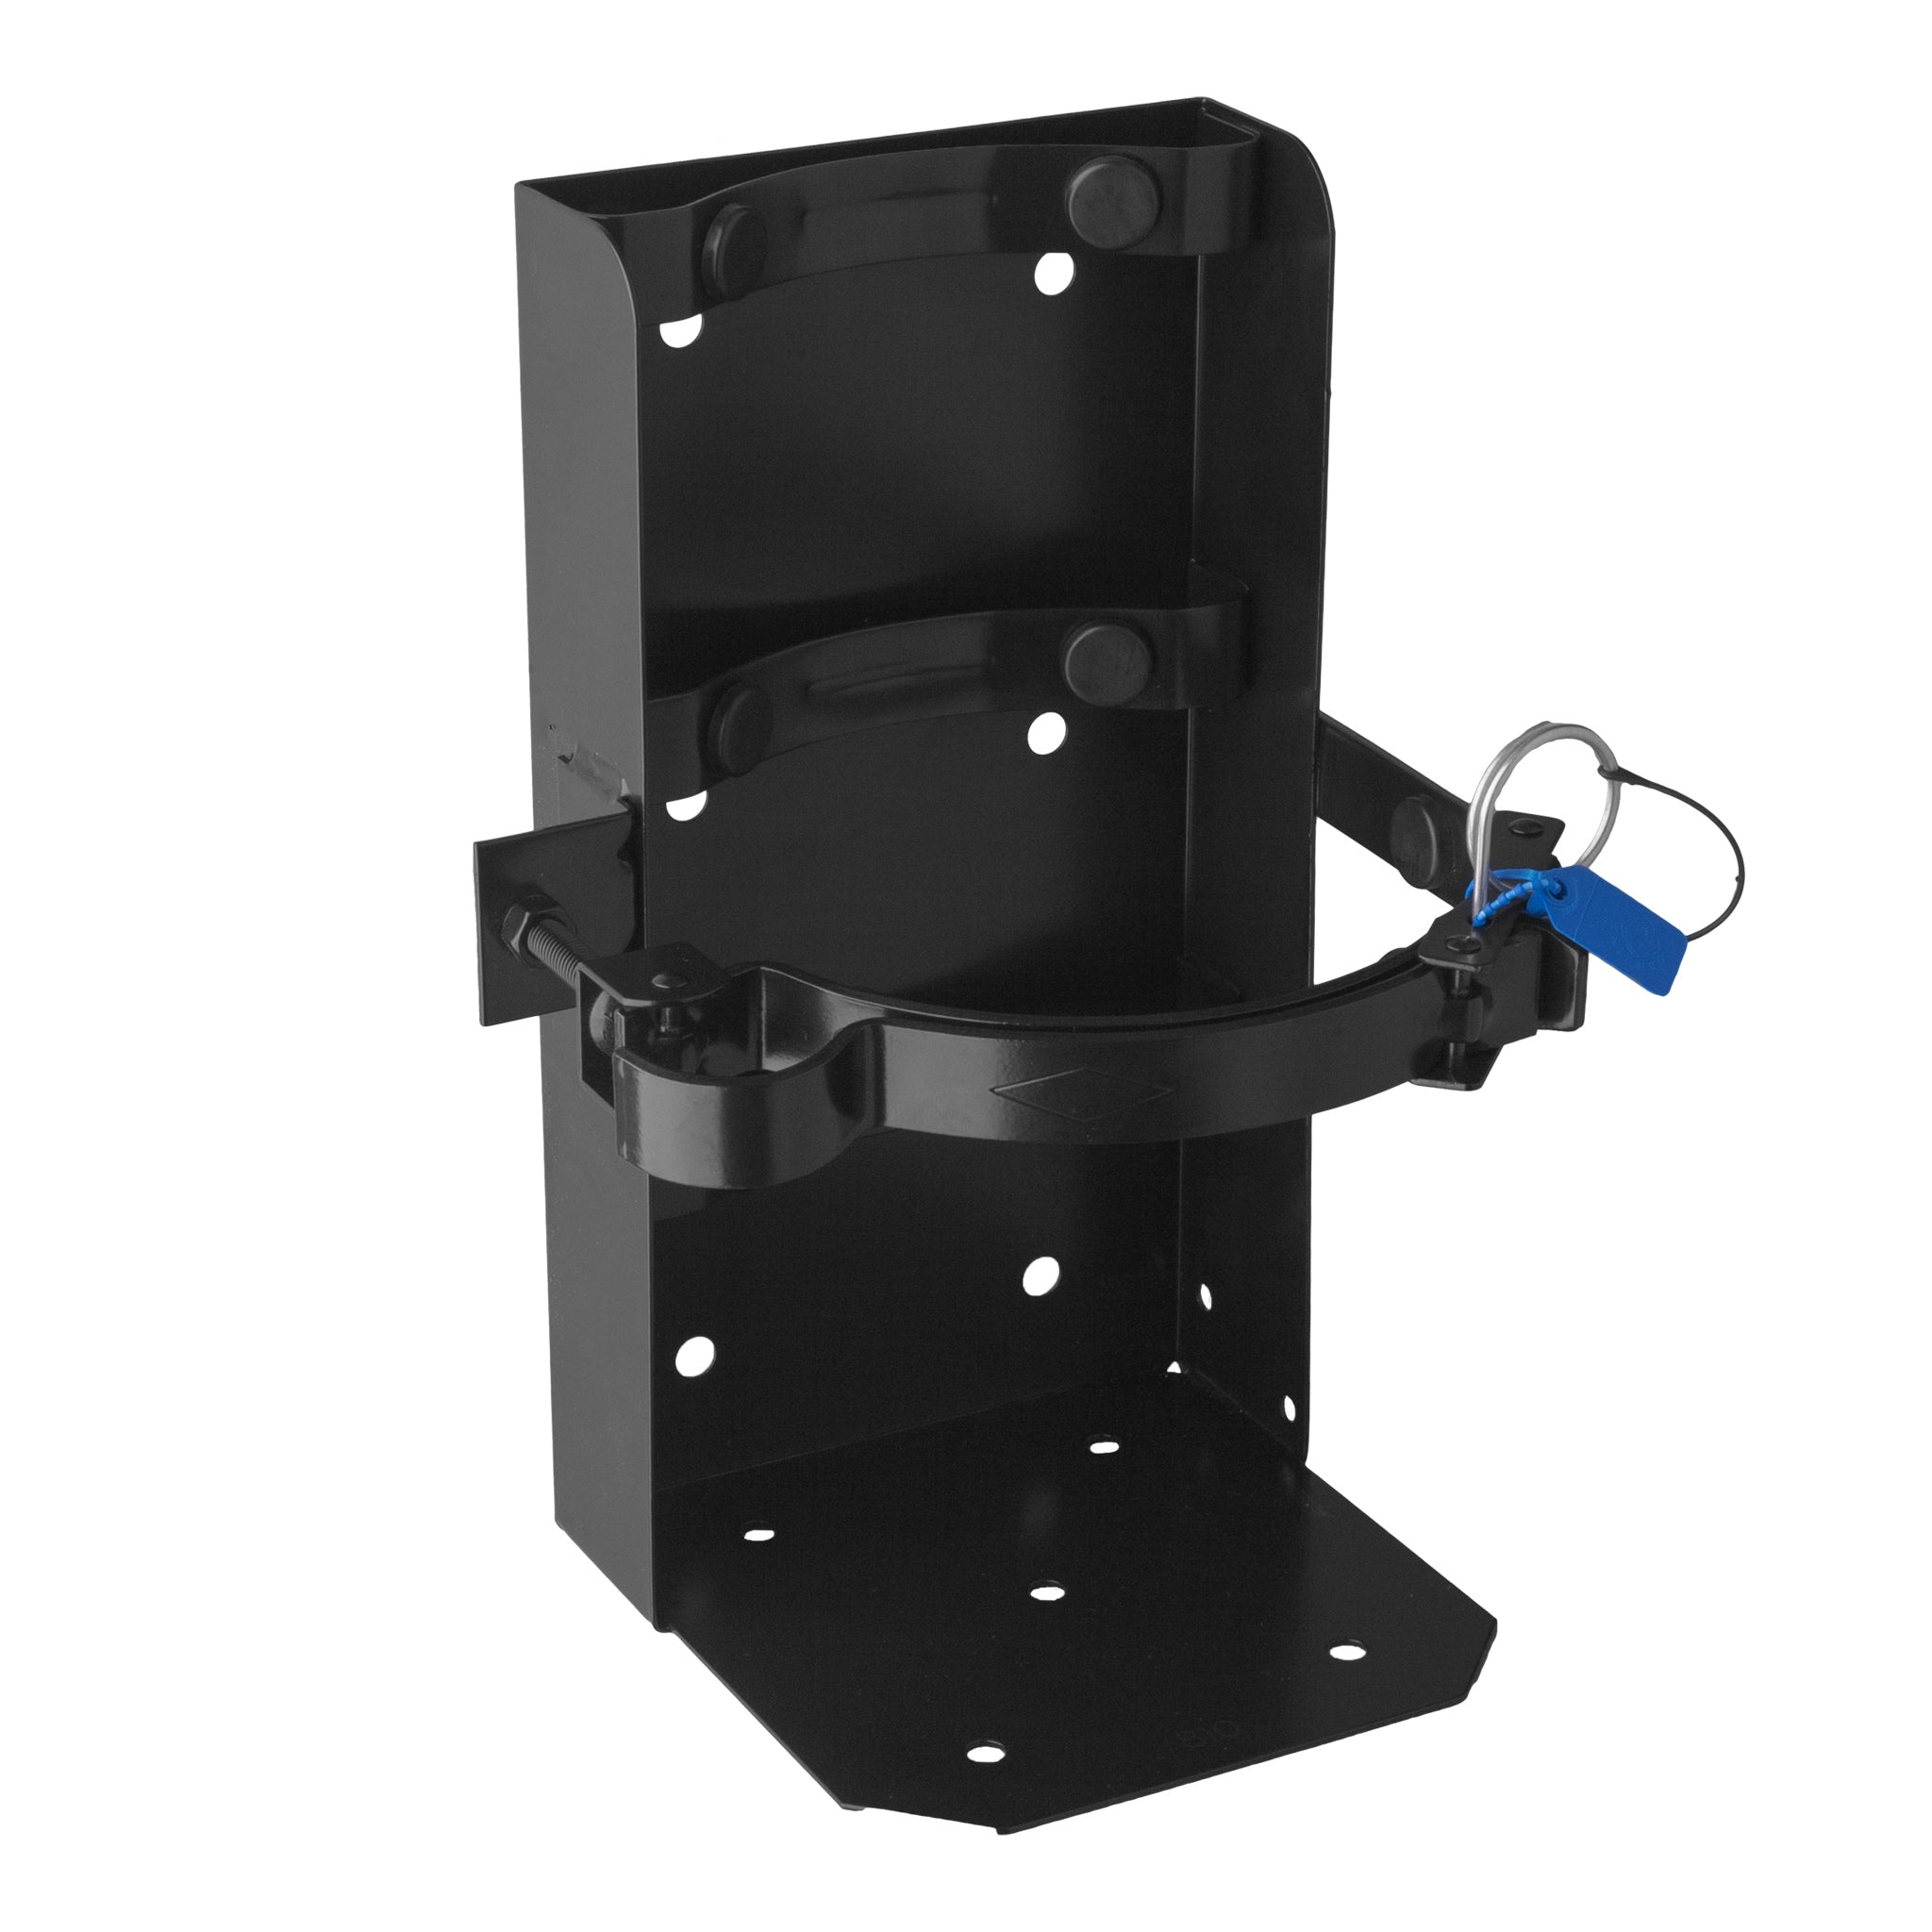 810 - Box-type Fire Extinguisher Bracket